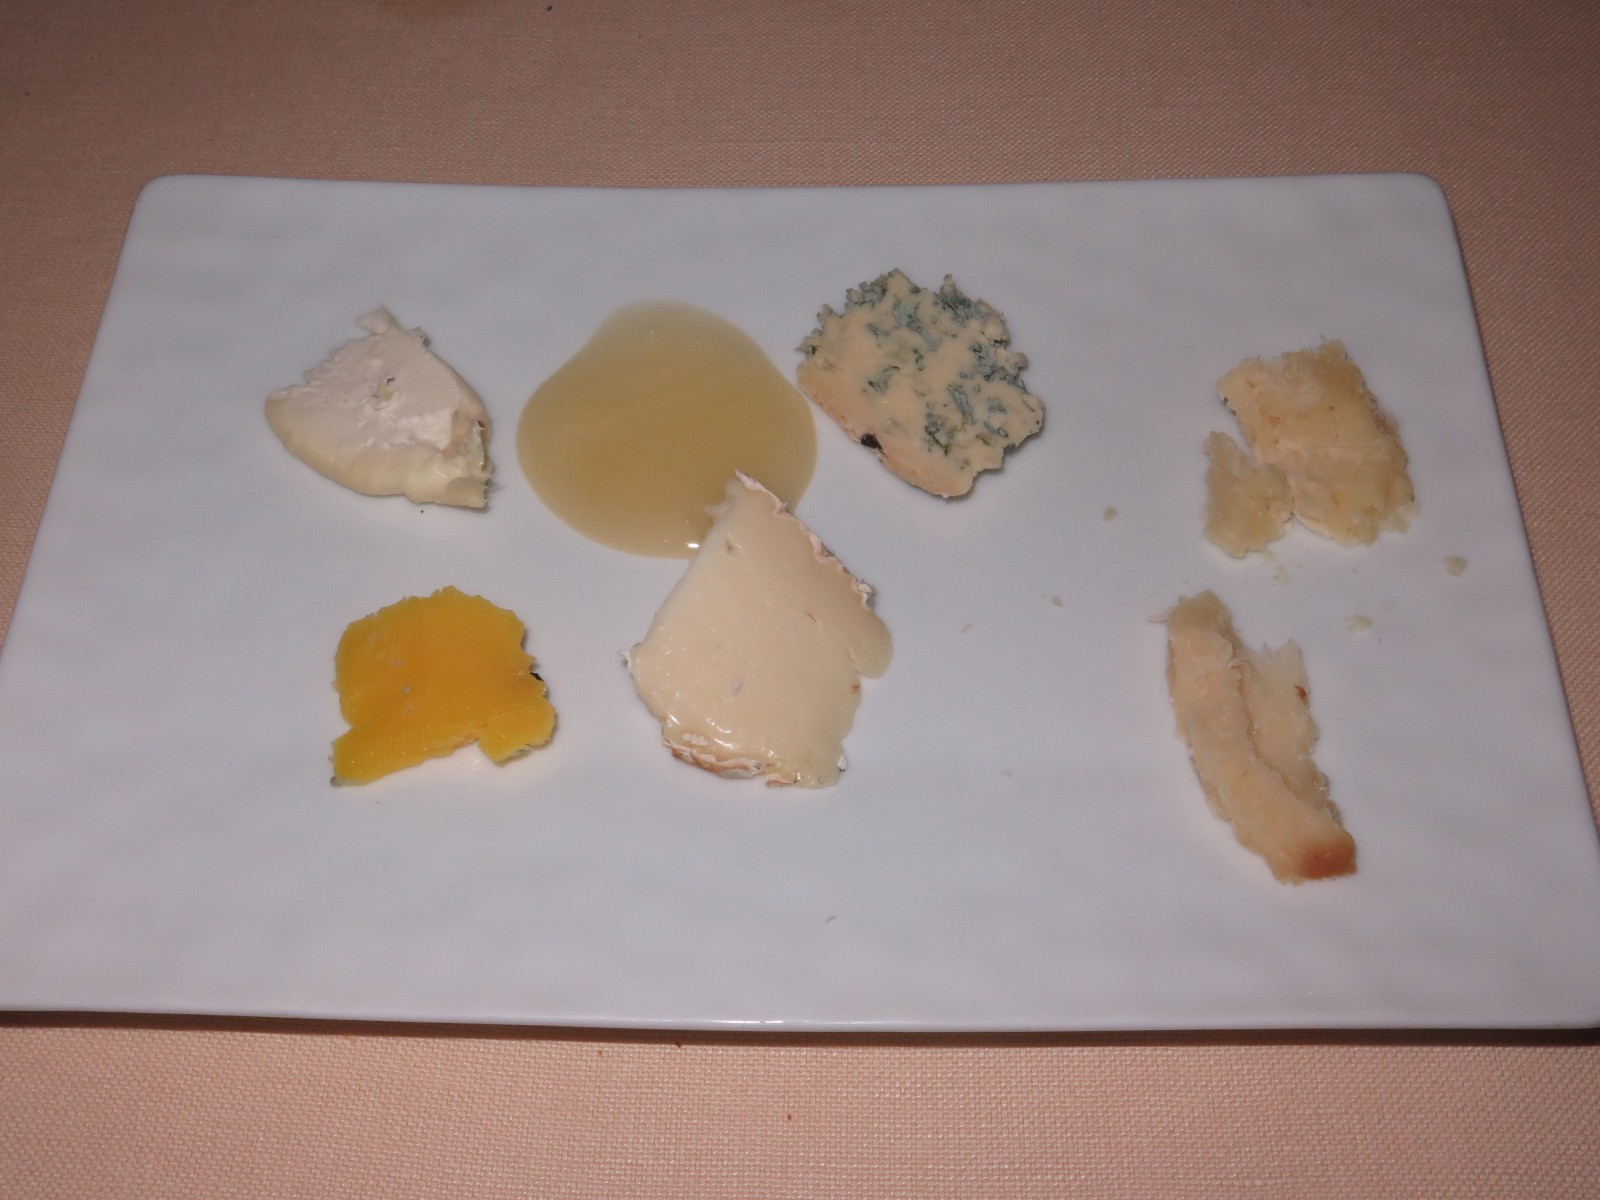 A fine selection of cheese from the trolley